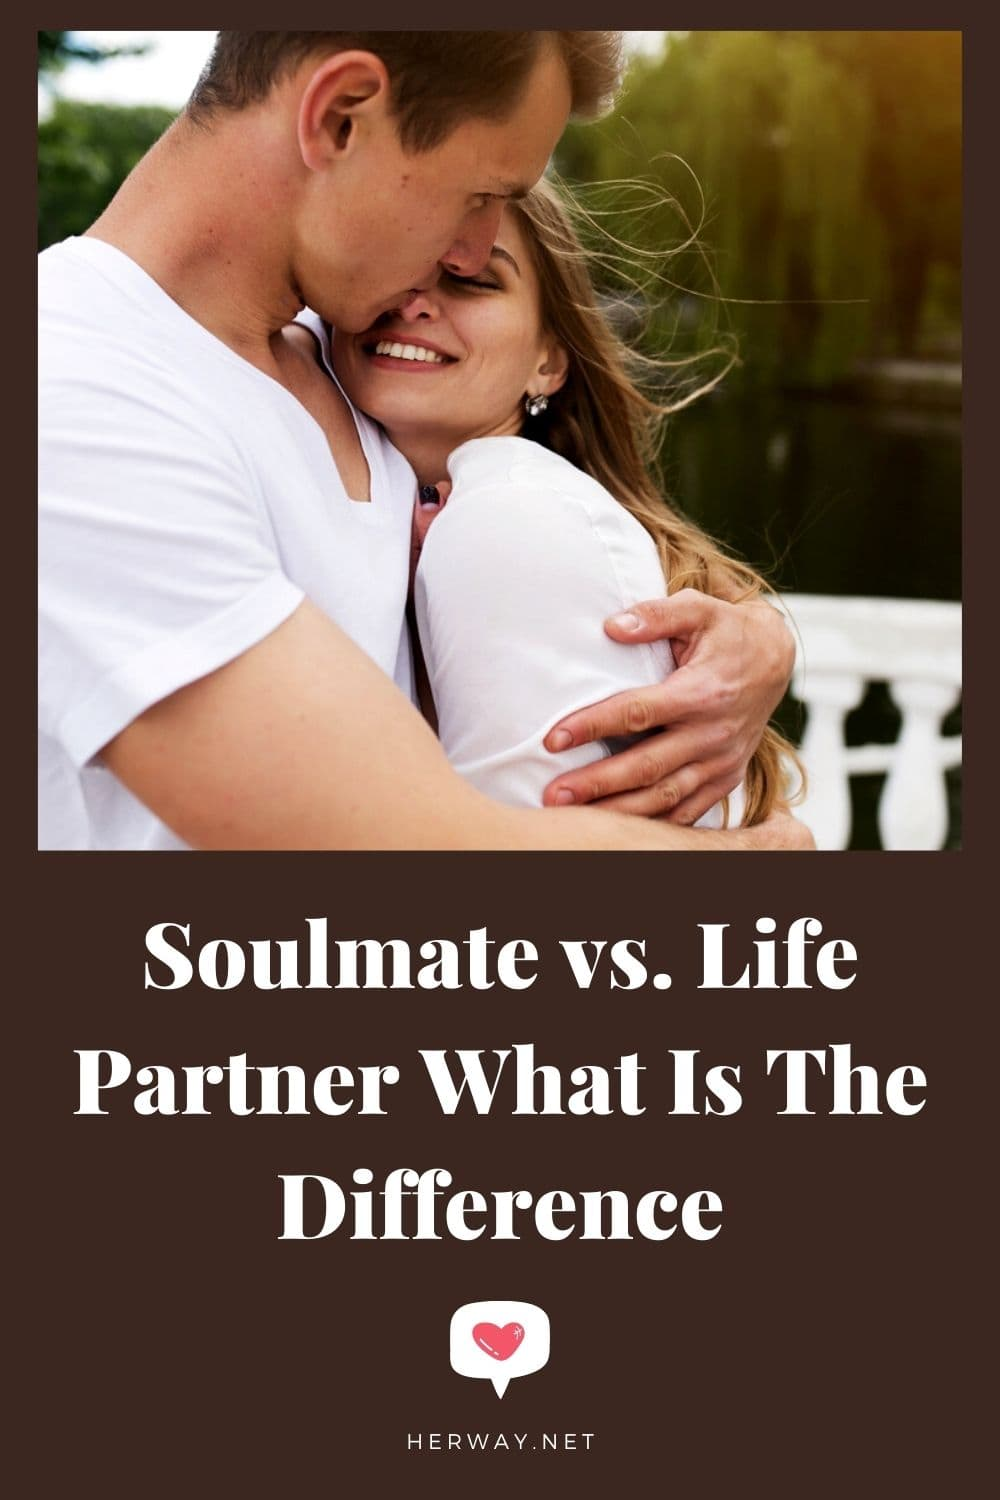 Soulmate vs. Life Partner What Is The Difference